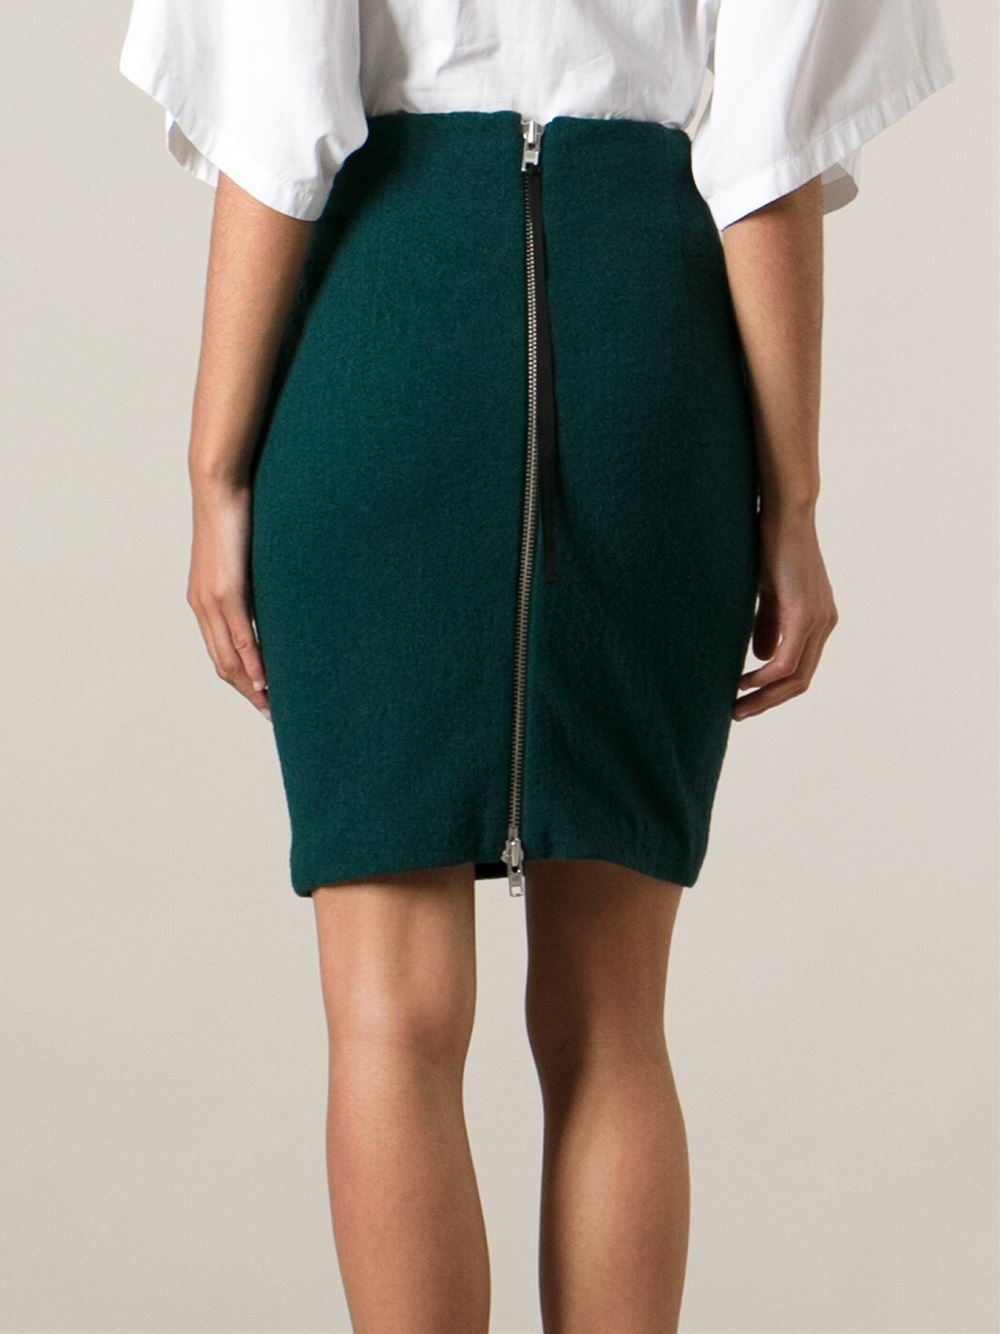 D.efect Short Pencil Skirt in Green | Lyst